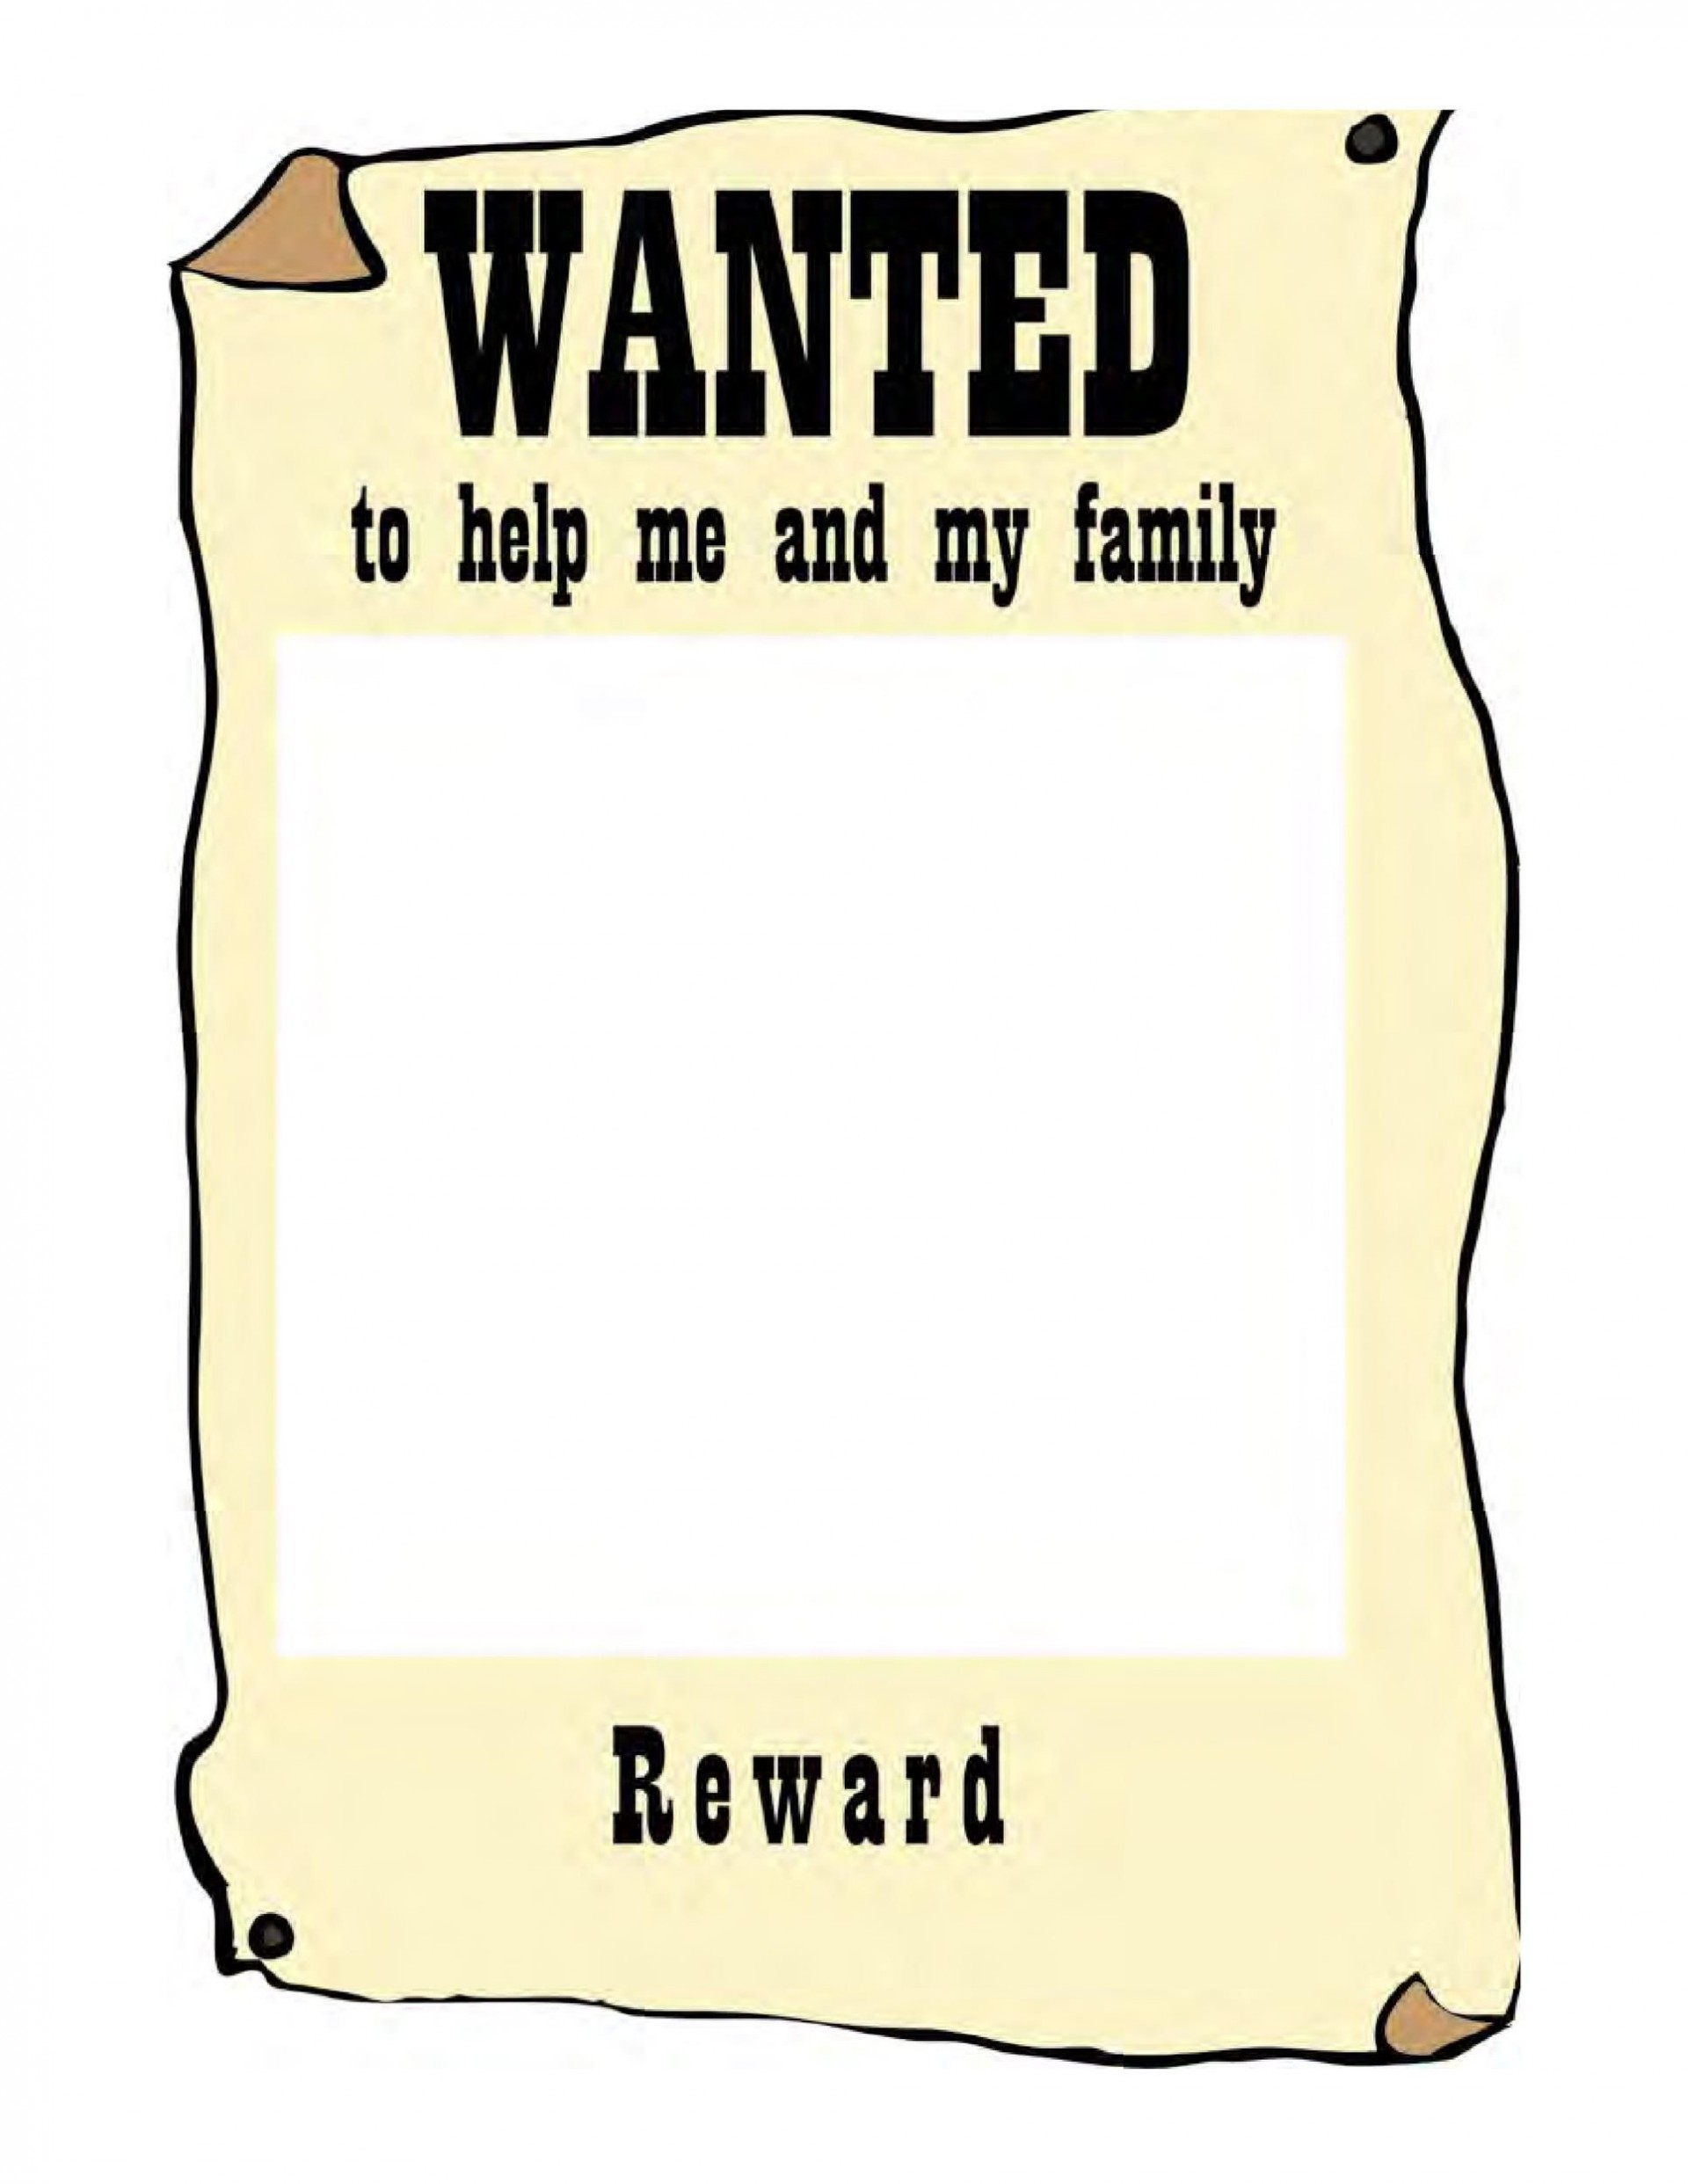 009 Unique Free Wanted Poster Template High Resolution  For Microsoft Word Download Student1920